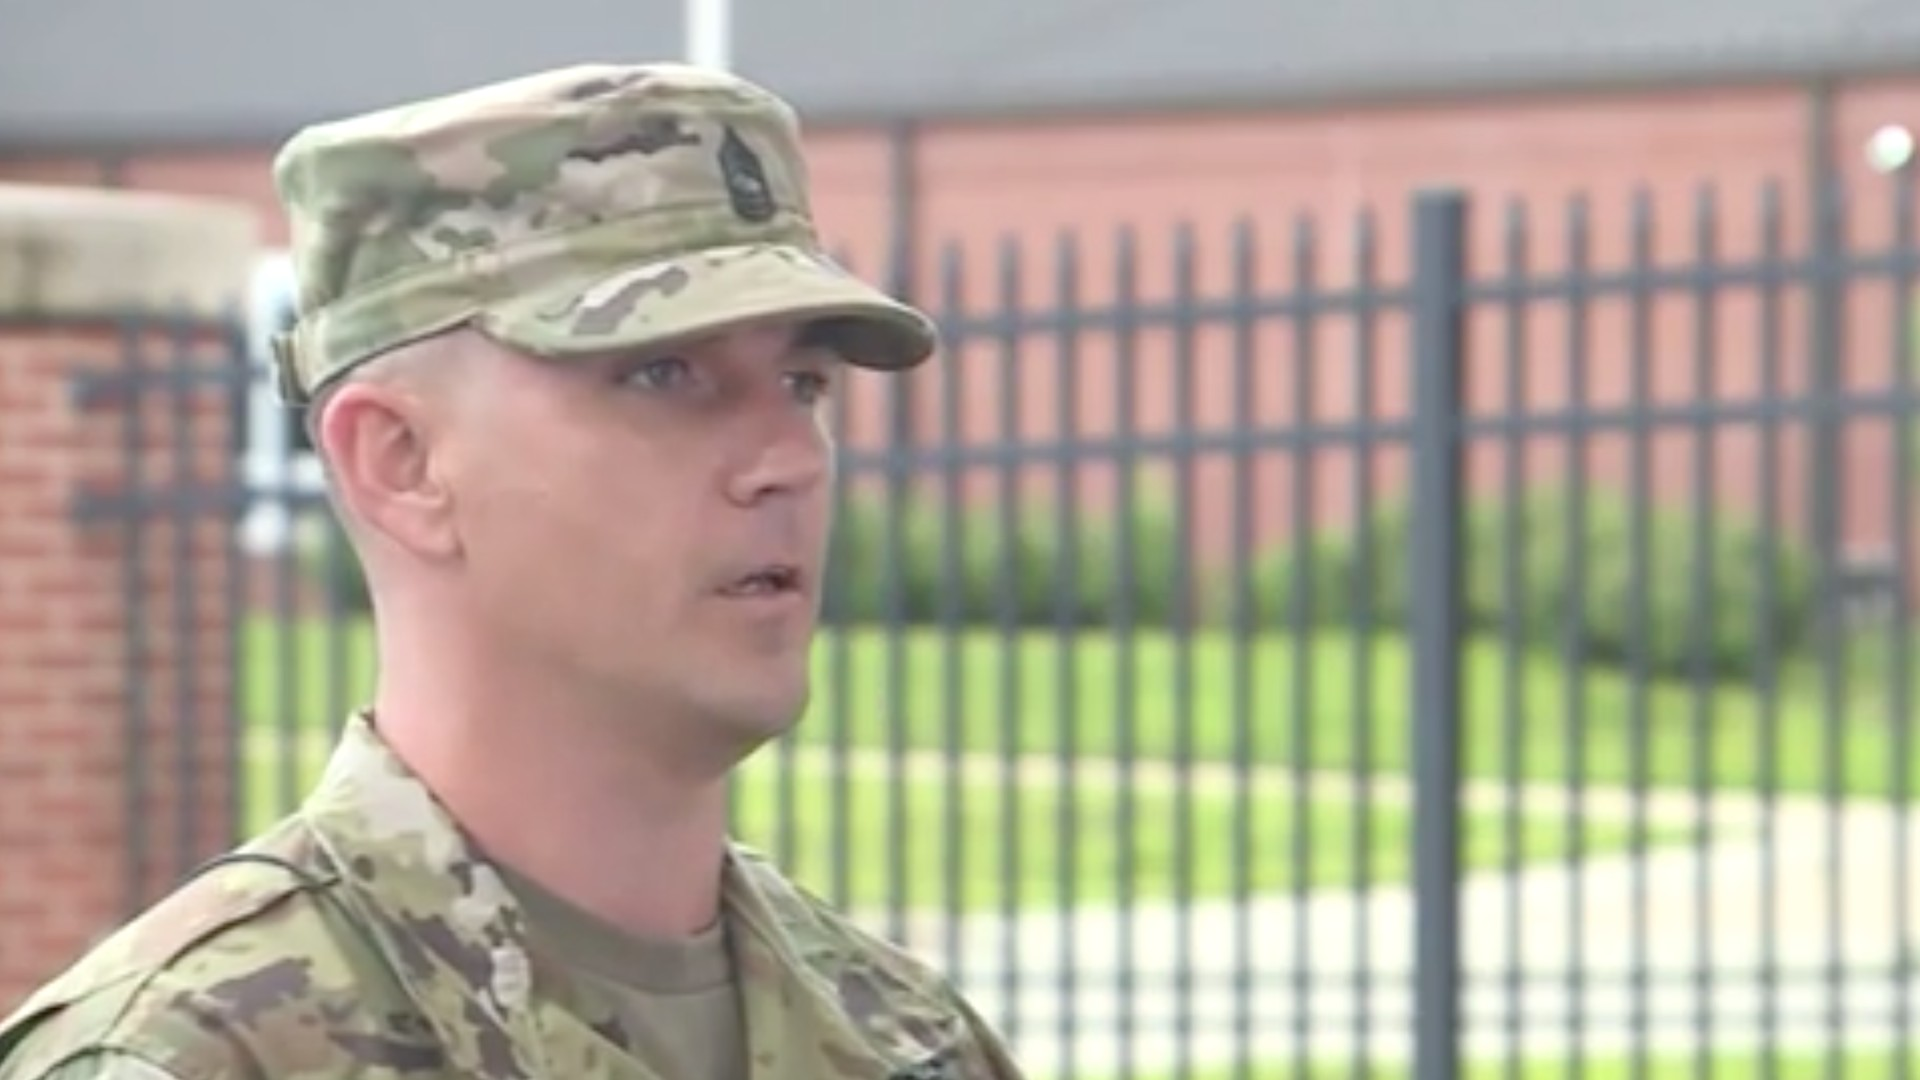 Master Sgt. David Royer is intervened after the incident. (KMBC)